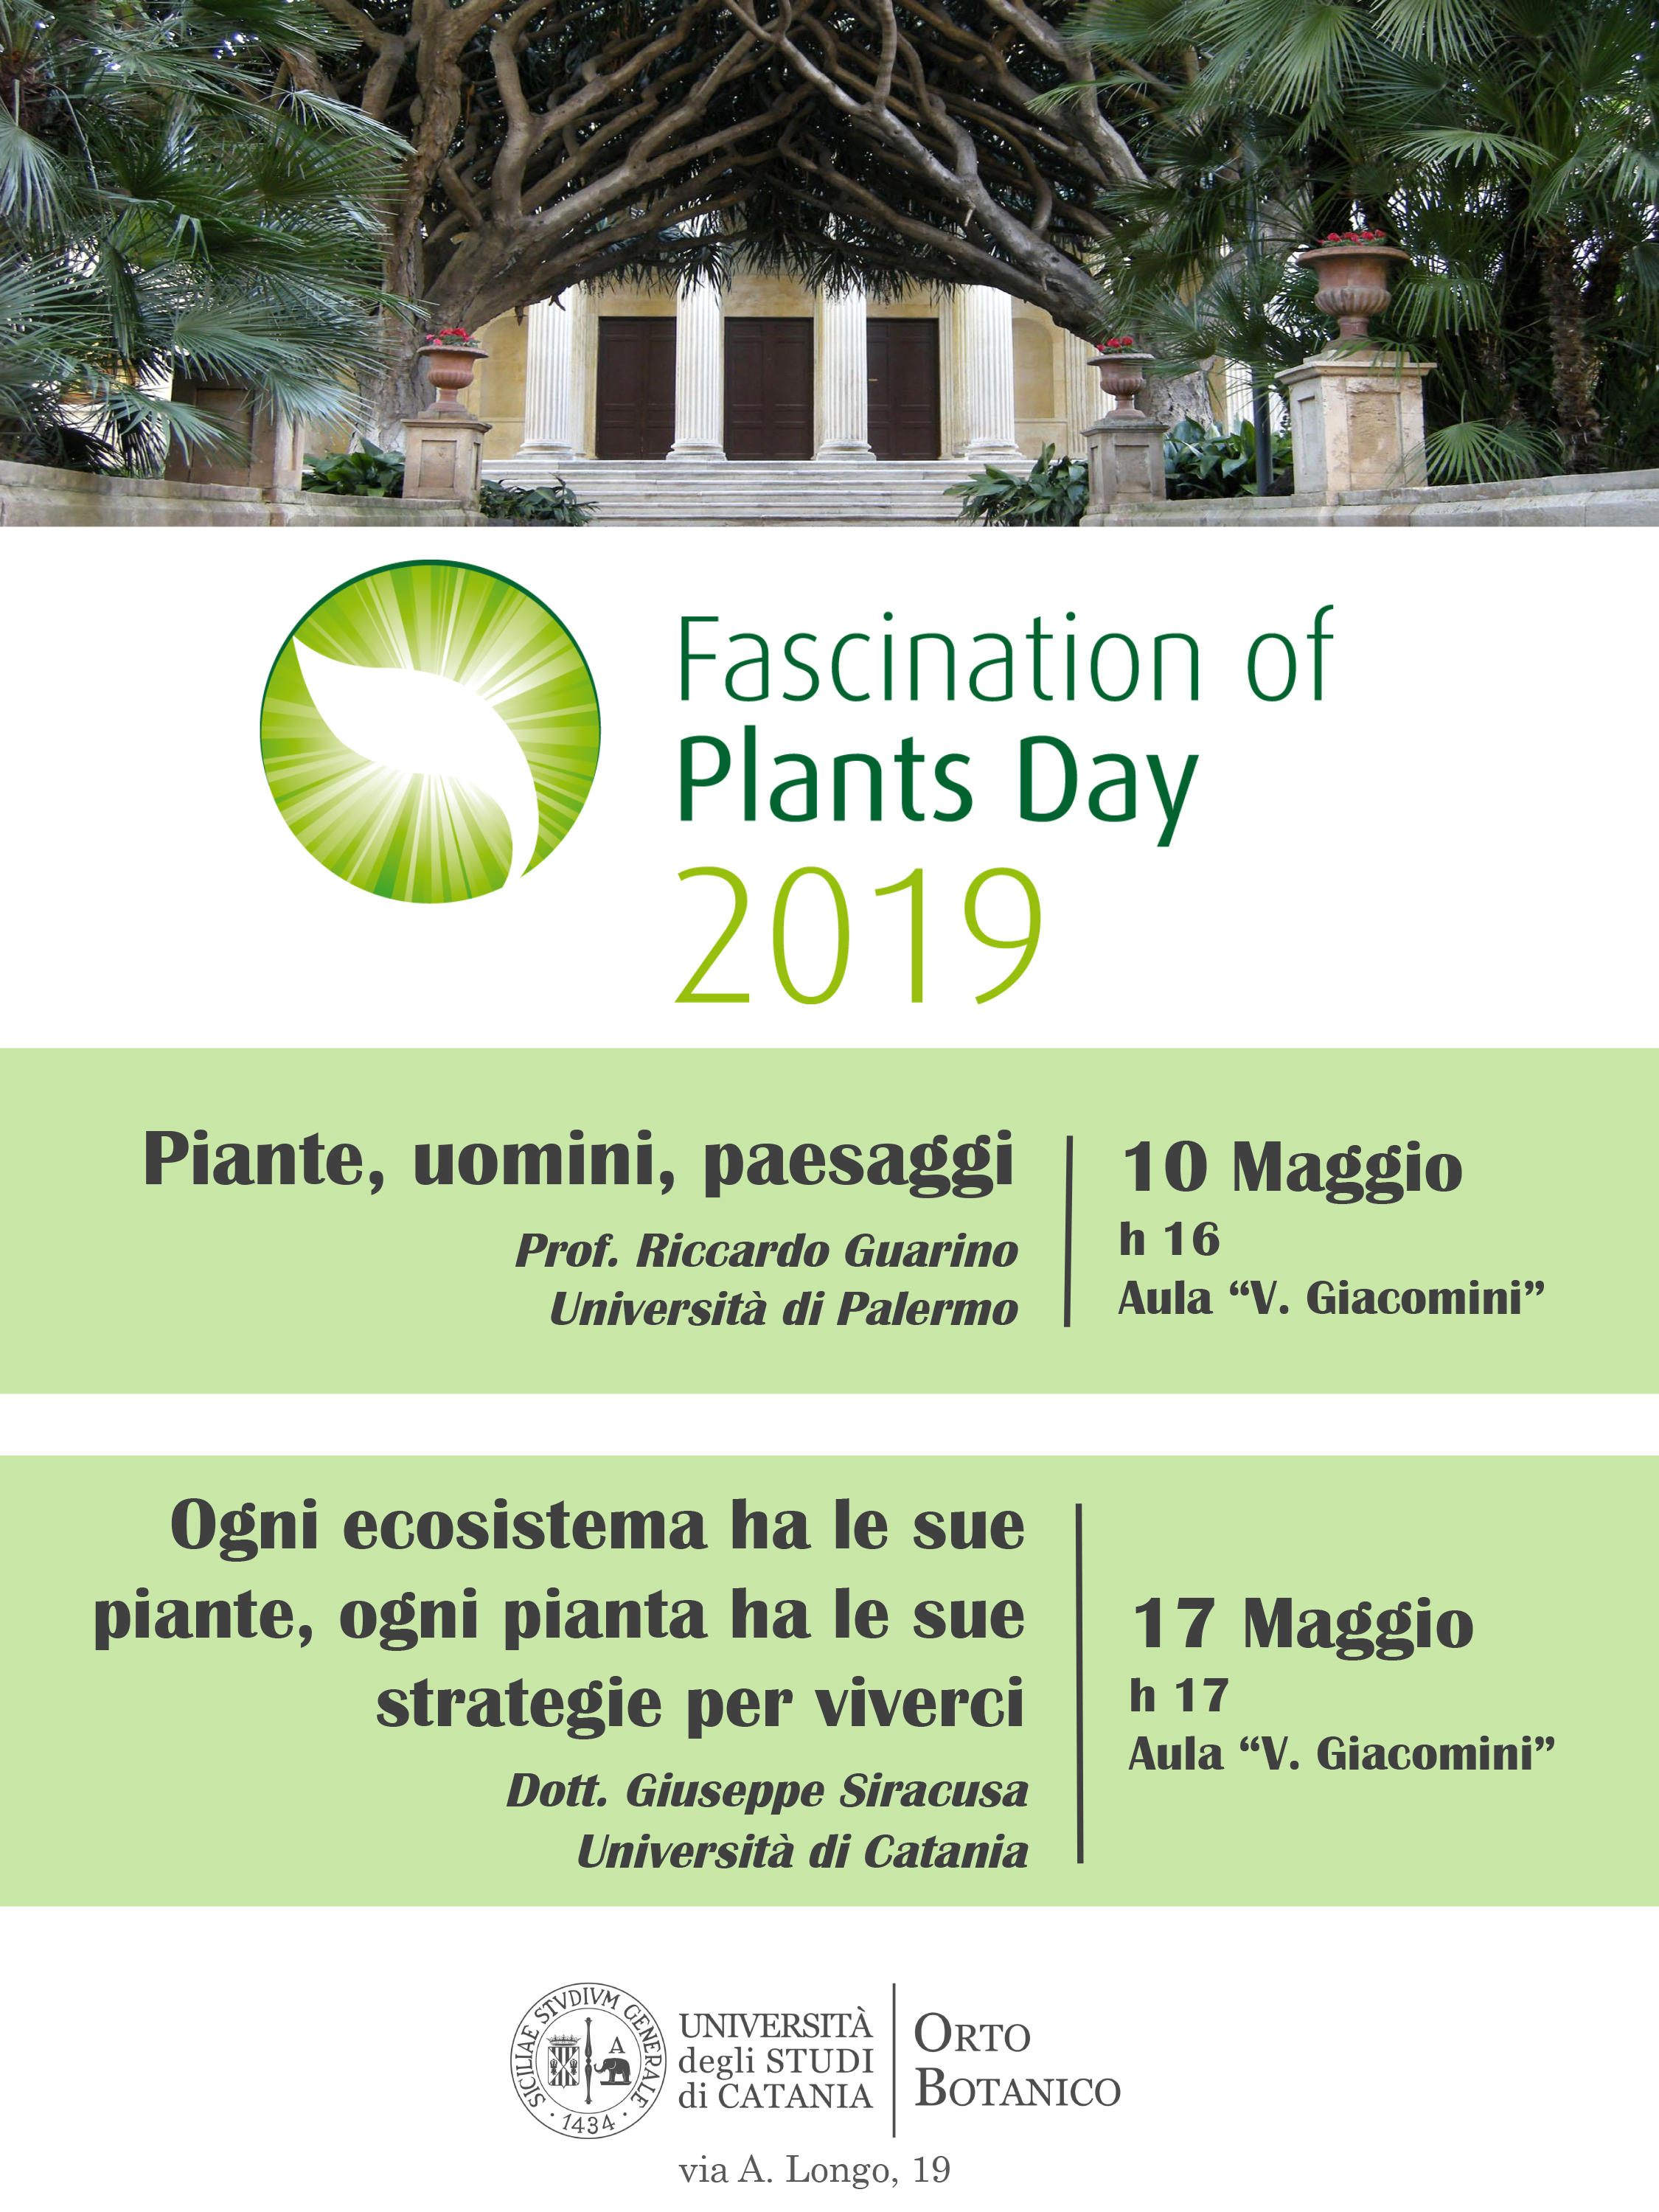 Fascination of Plants Day Catania